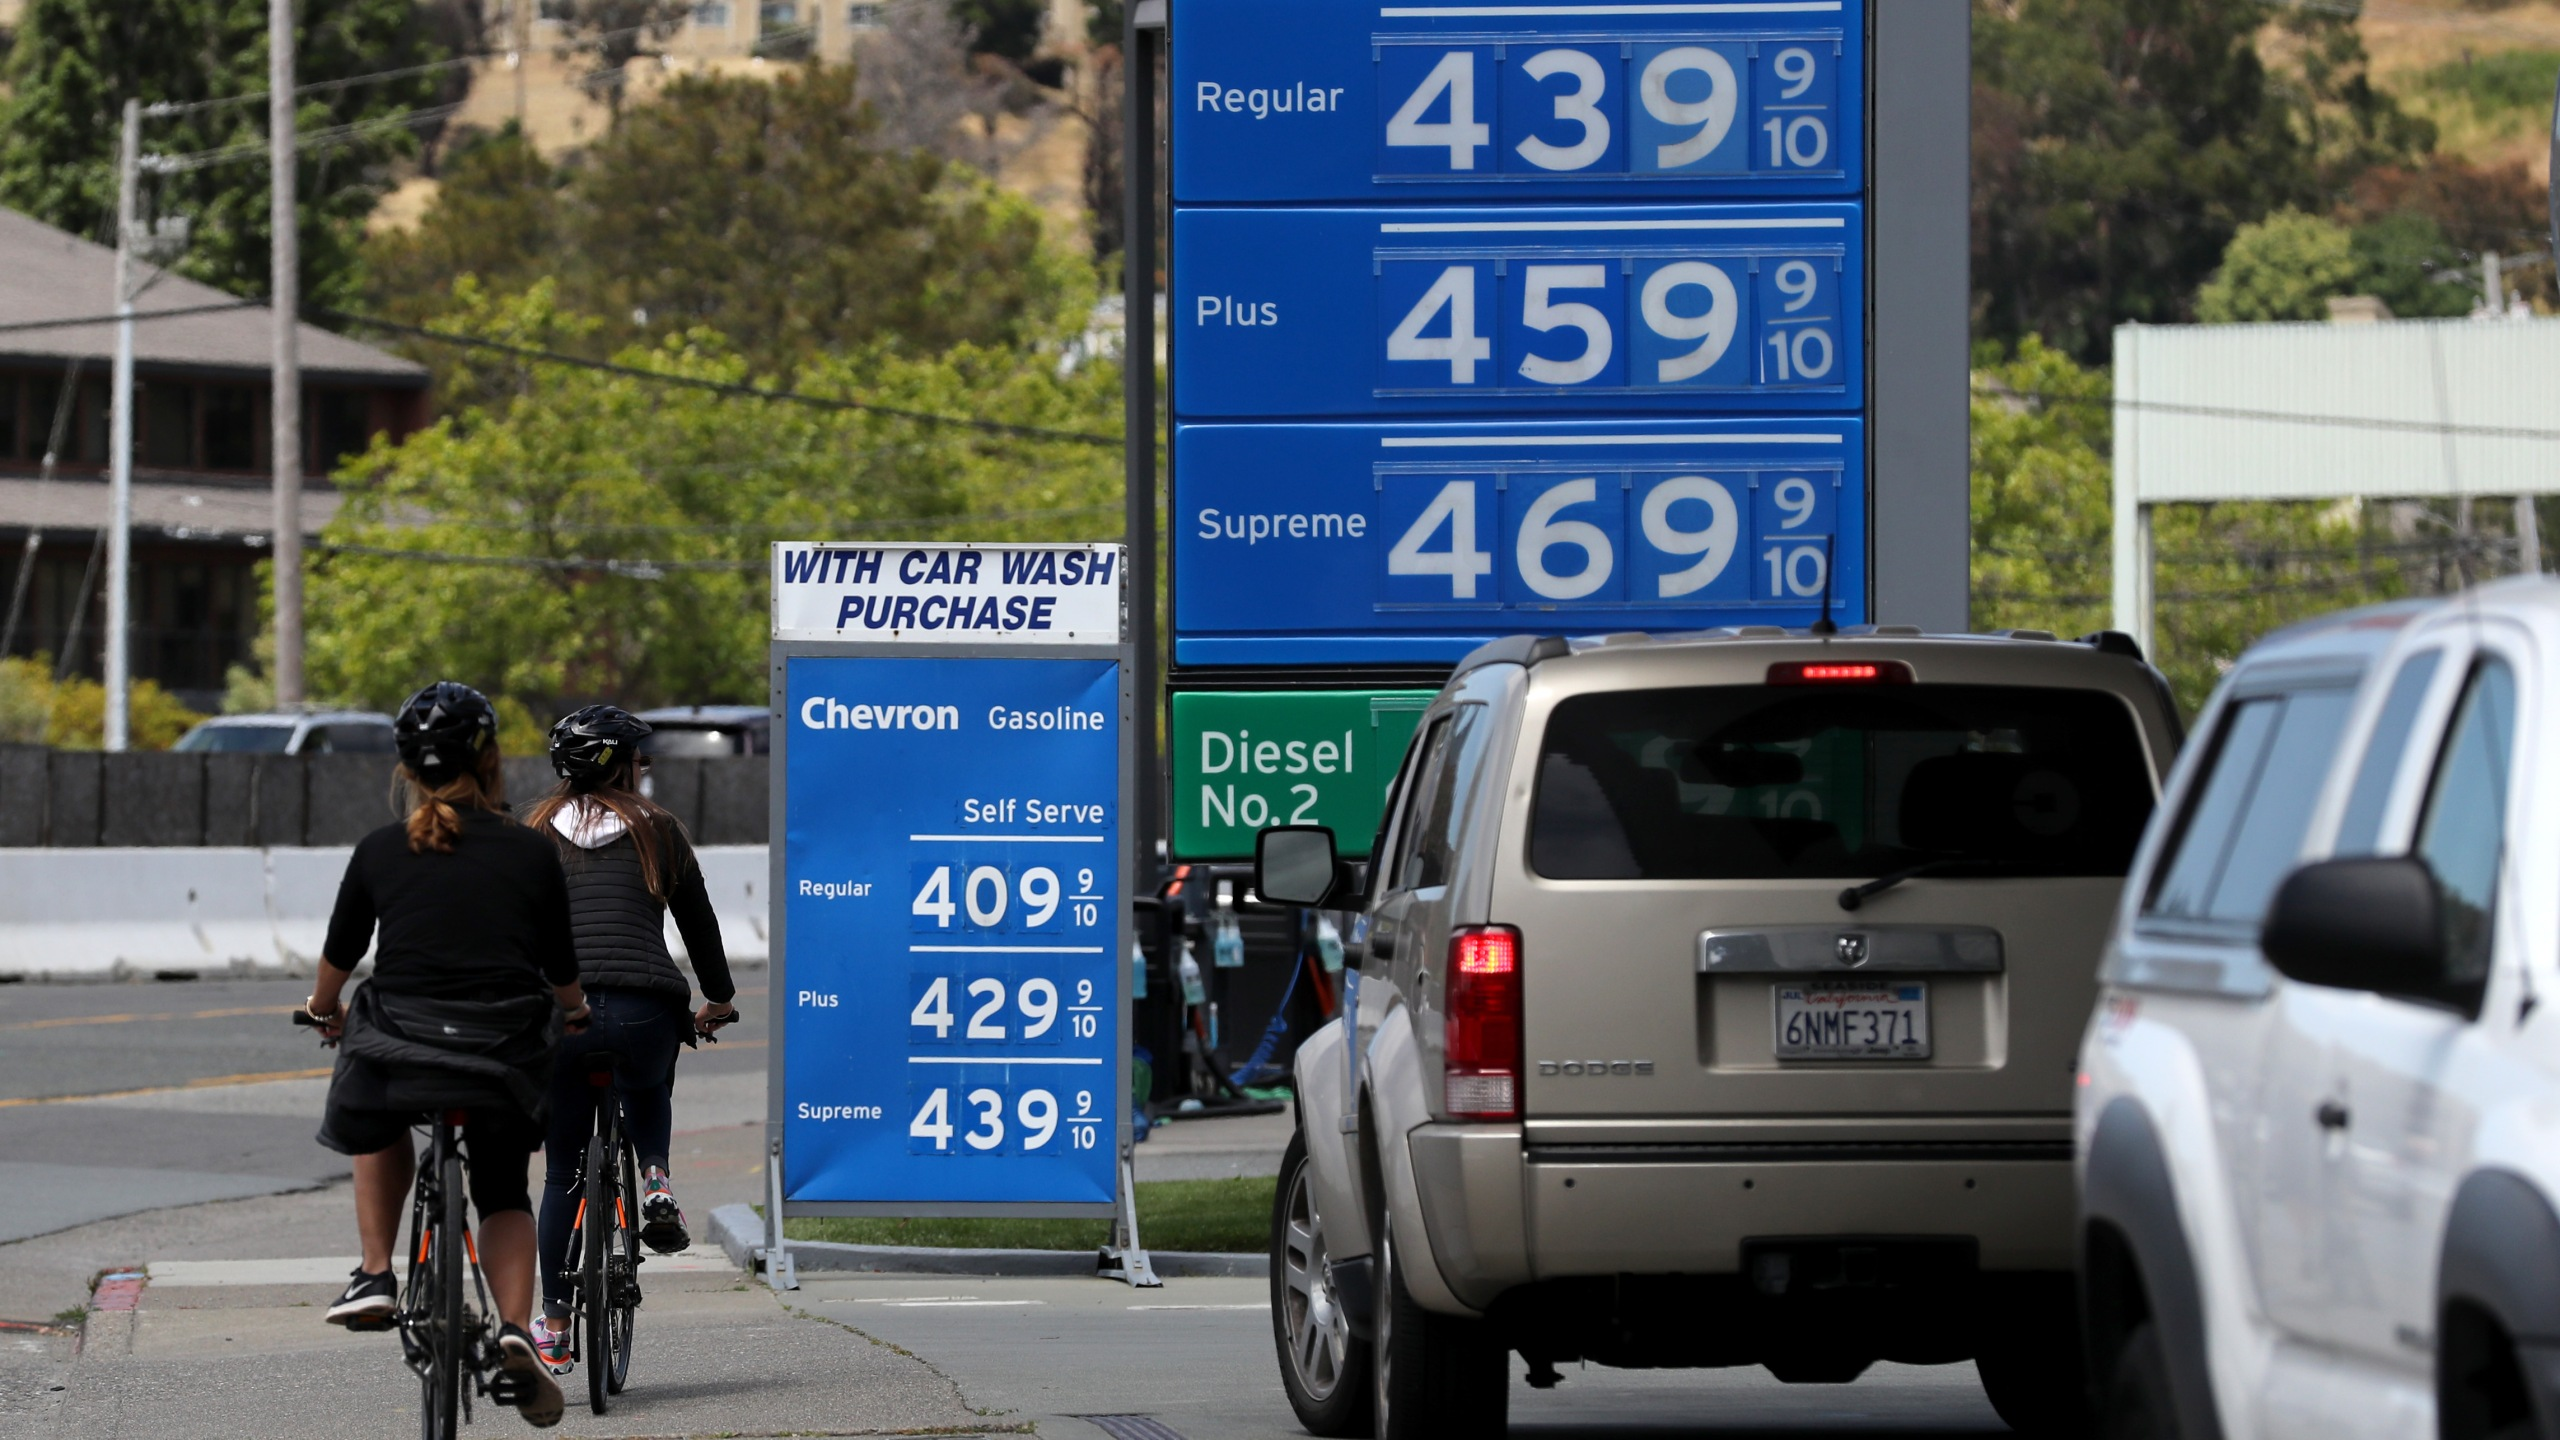 Gas prices over $4.00 a gallon are displayed at a gas station on May 24, 2019 in Mill Valley. (Credit: Justin Sullivan/Getty Images)